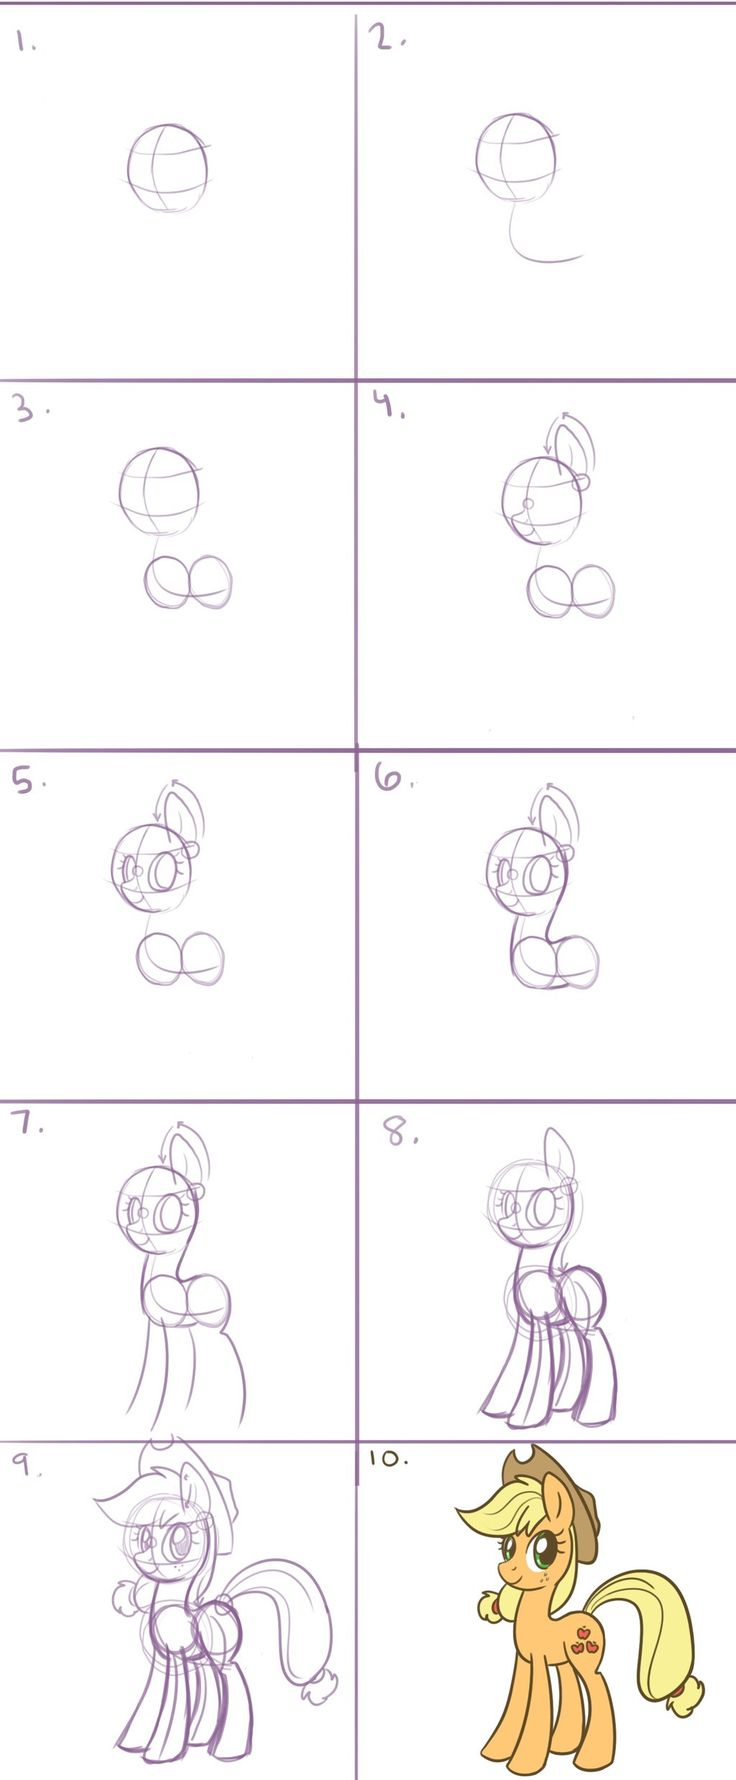 How to Draw a Pony in 10 Steps by steffy-beff.deviantart.com on @deviantART